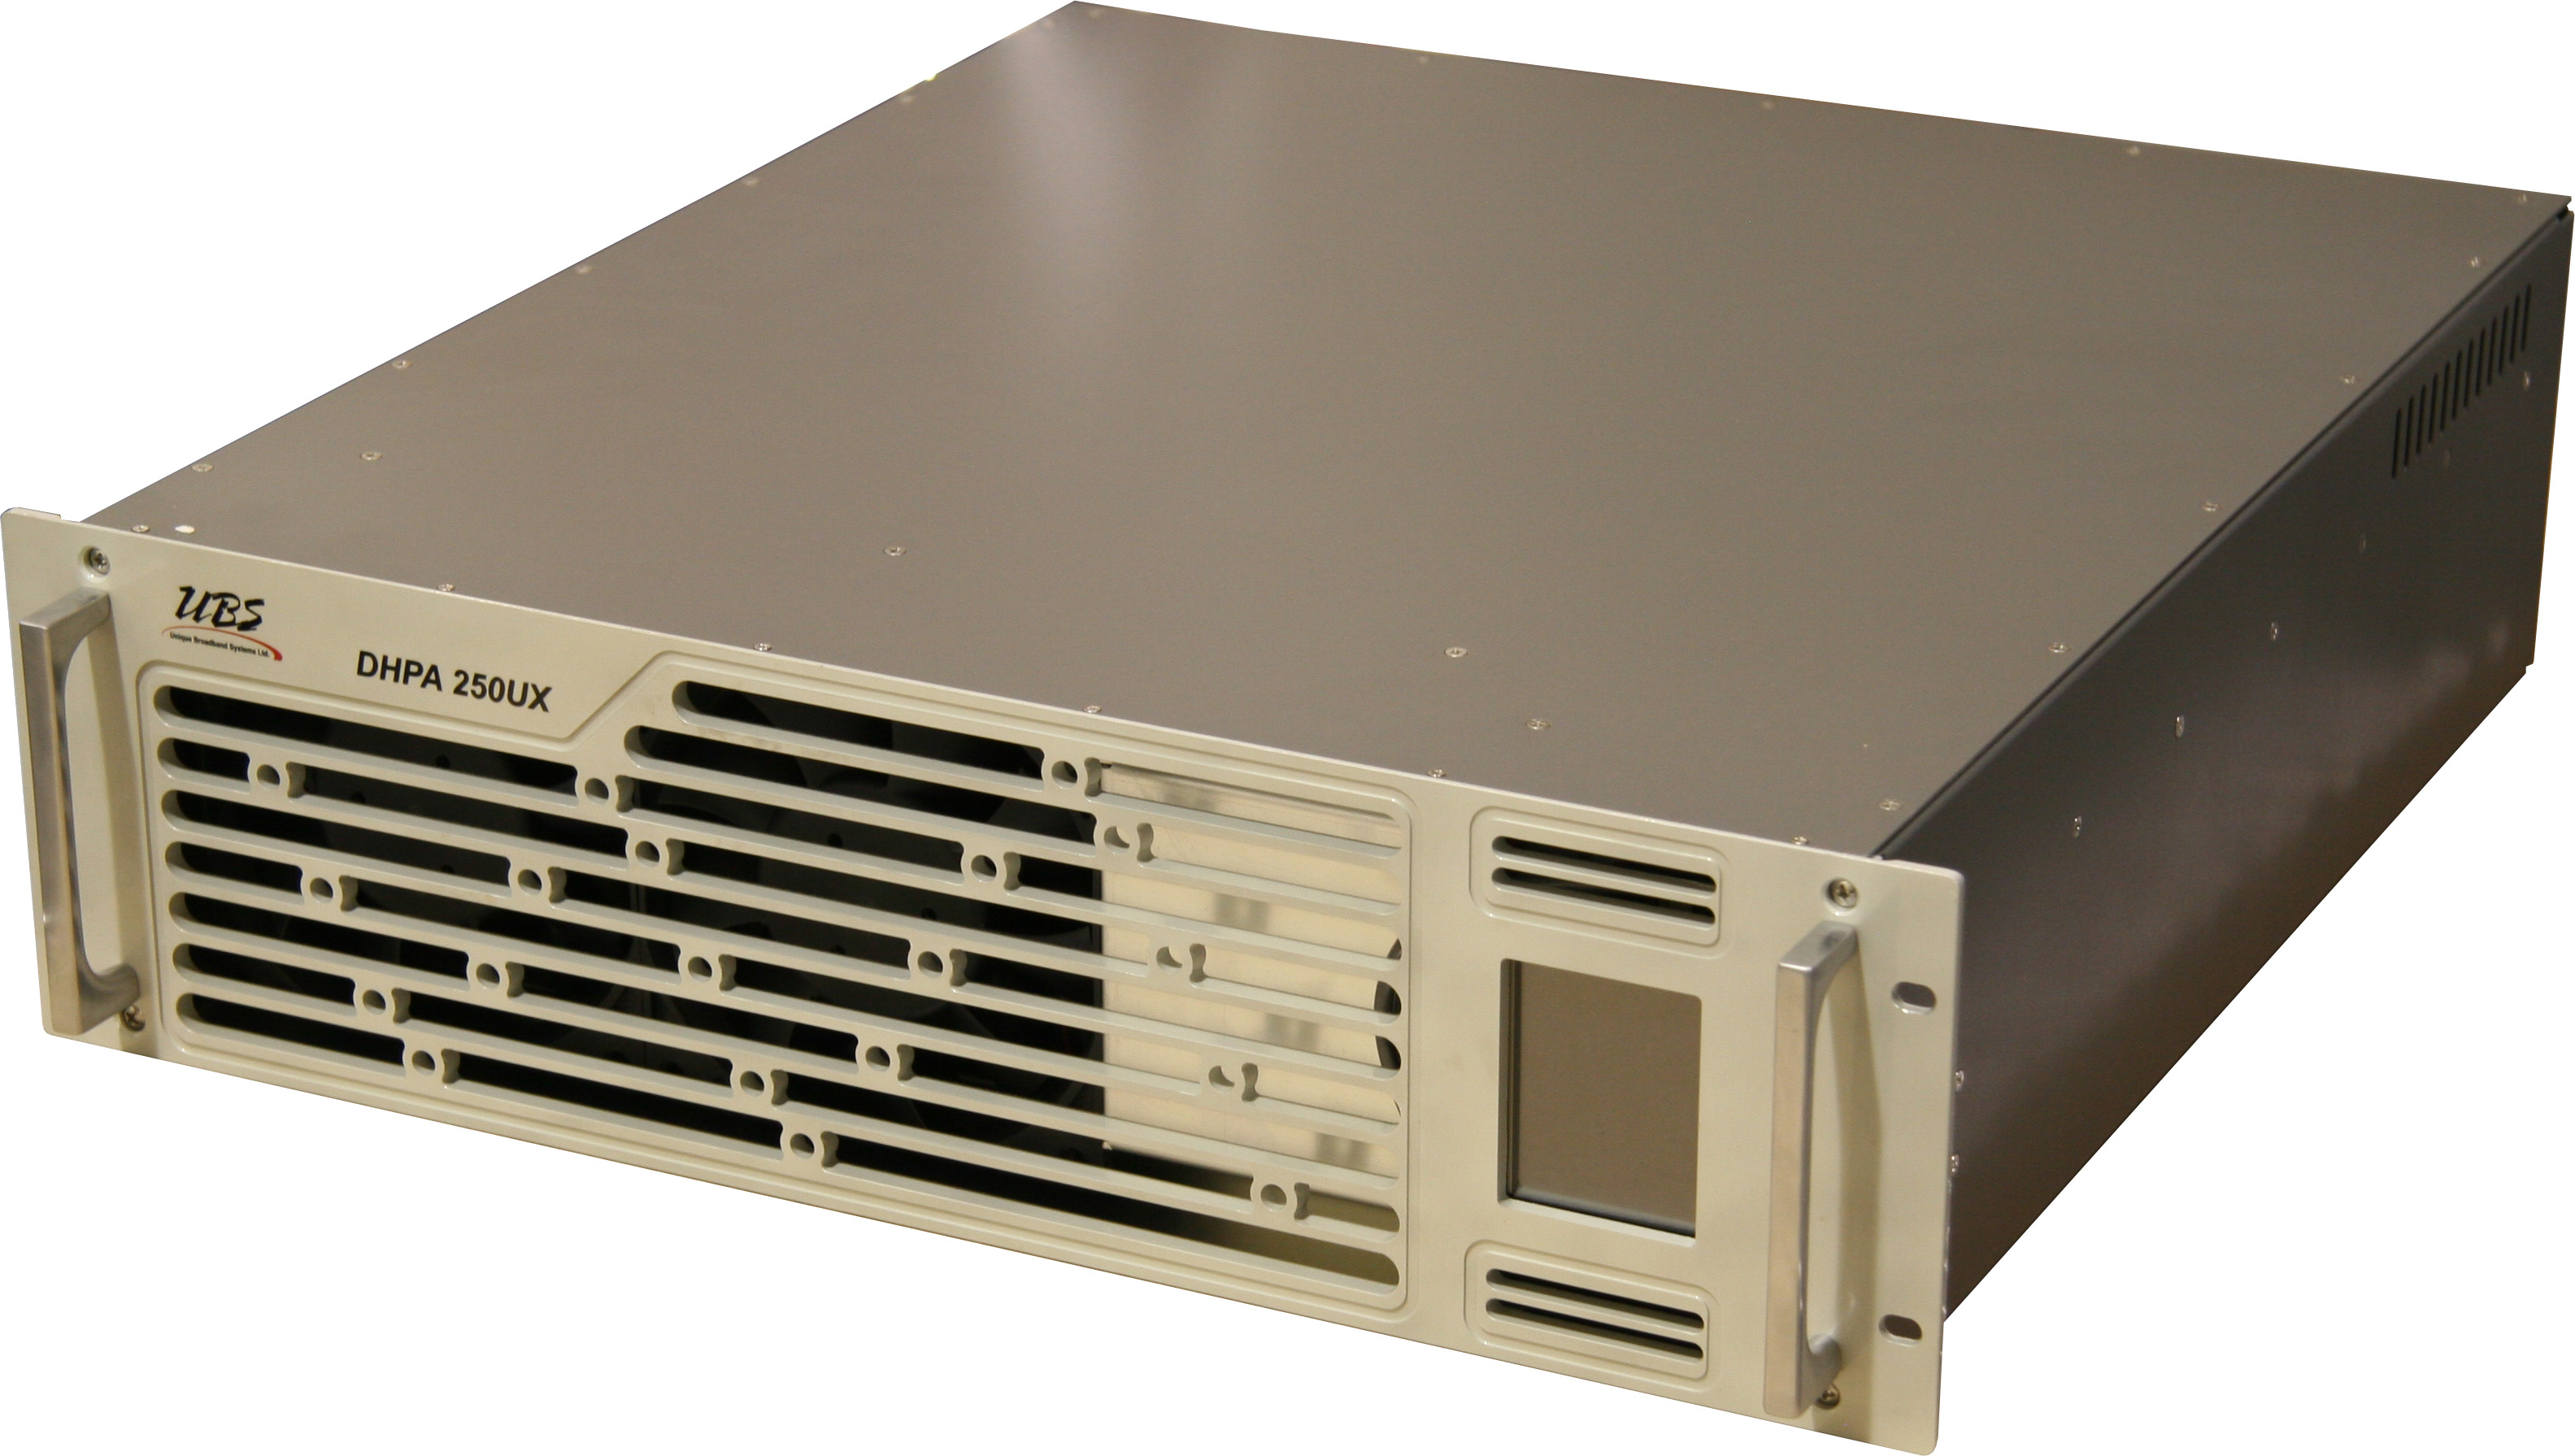 Uhf Band 250w Power Amplifier Unique Broadband Systems